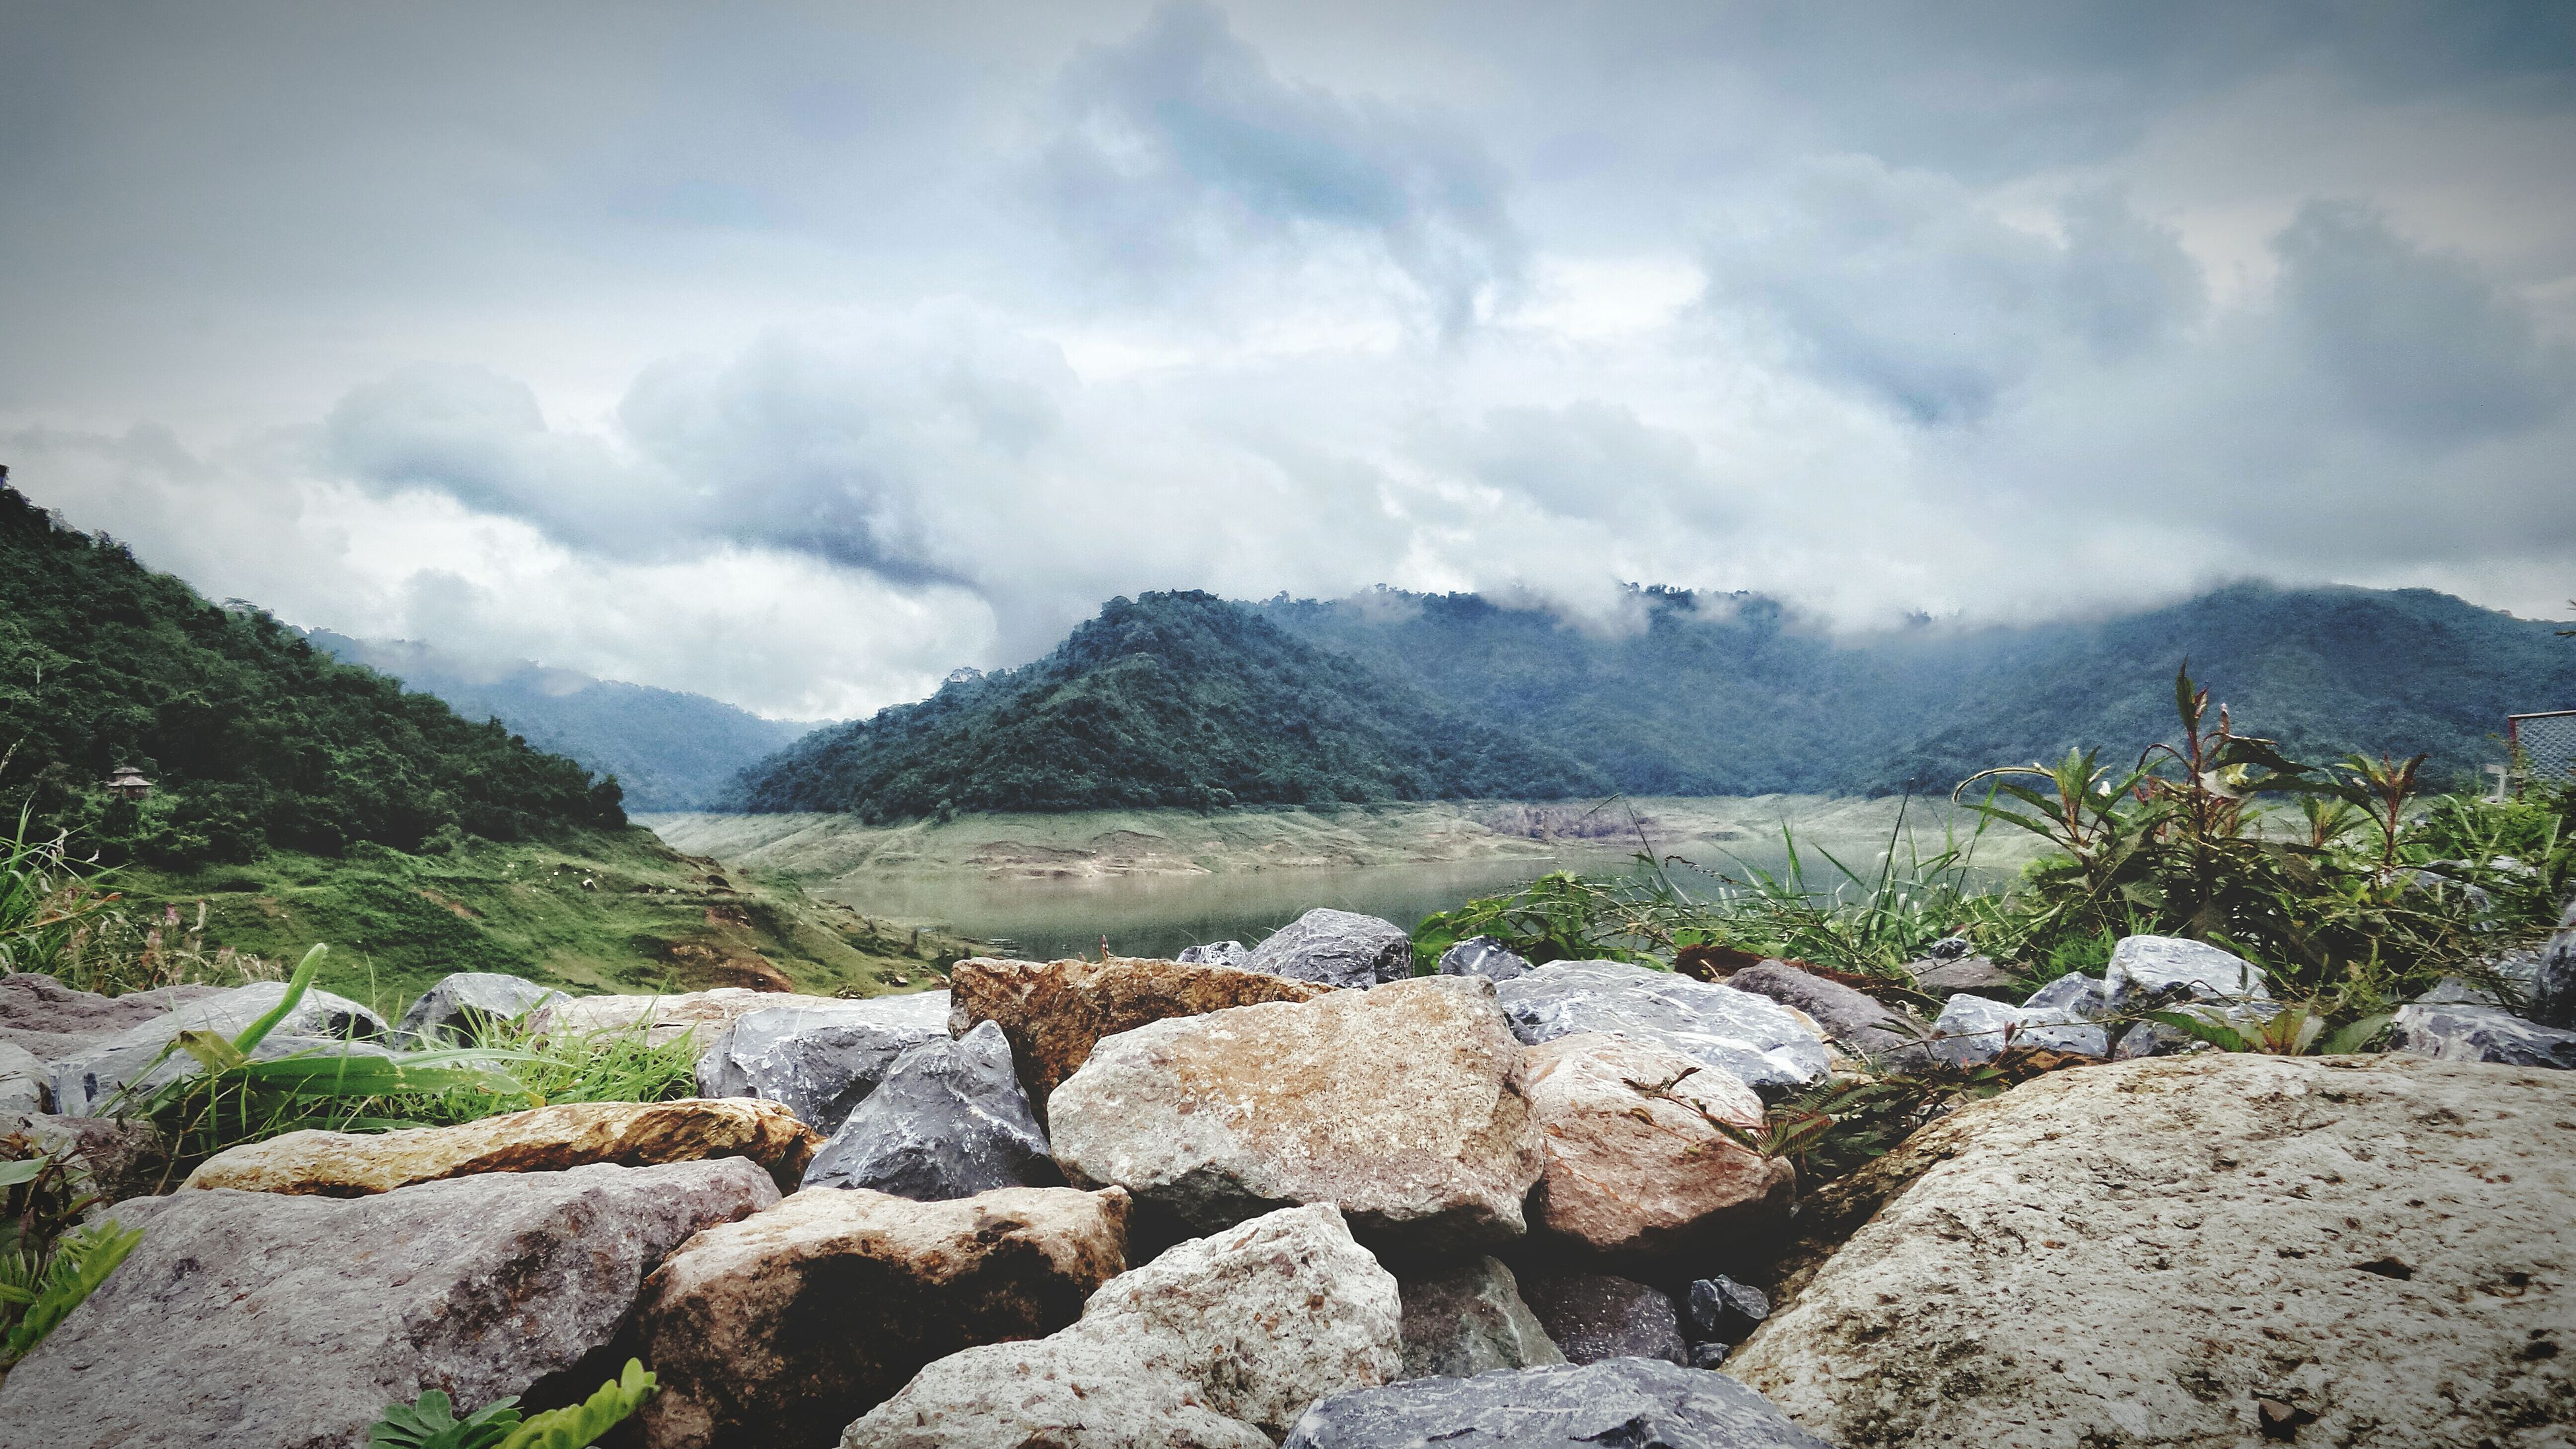 mountain, sky, mountain range, scenics, tranquil scene, tranquility, cloud - sky, beauty in nature, landscape, nature, rock - object, cloudy, non-urban scene, cloud, idyllic, rock formation, day, remote, hill, physical geography